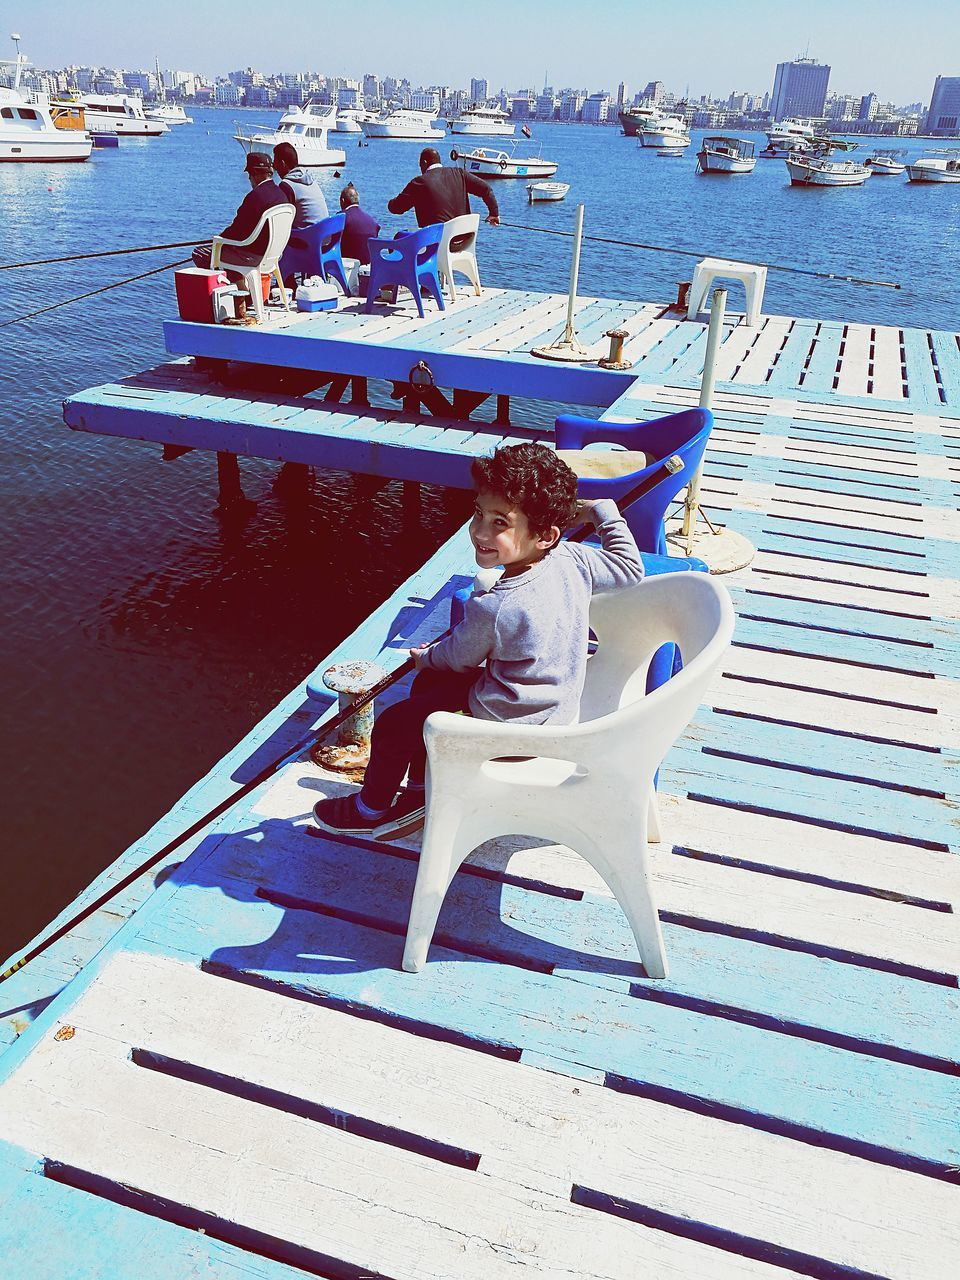 nautical vessel, transportation, sitting, full length, sea, boat, mode of transport, water, real people, one person, moored, day, outdoors, casual clothing, leisure activity, yacht, beach, women, sailboat, sailing, vacations, lifestyles, harbor, young adult, men, sailor, nature, sky, adult, people